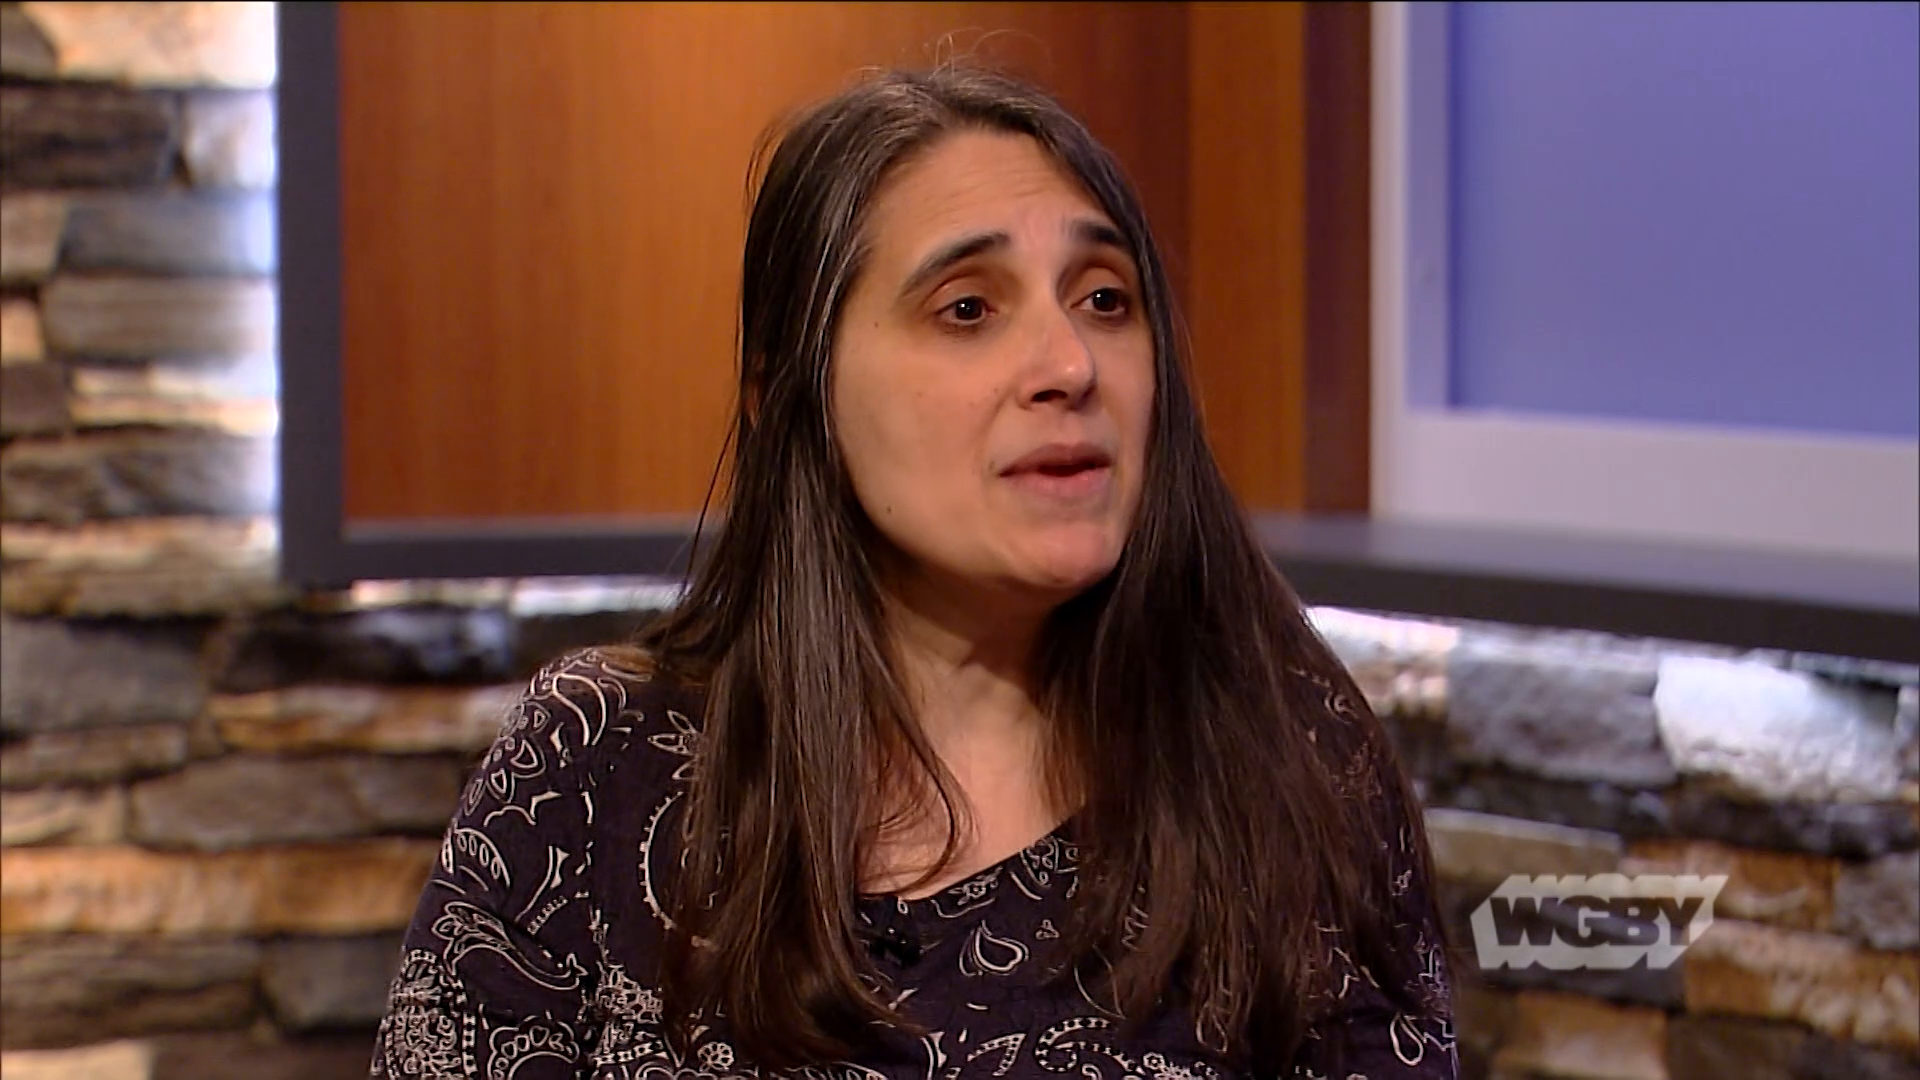 UMass Professor Joya Misra discusses efforts focused on keeping moms in STEM jobs and recruiting more women to the field.